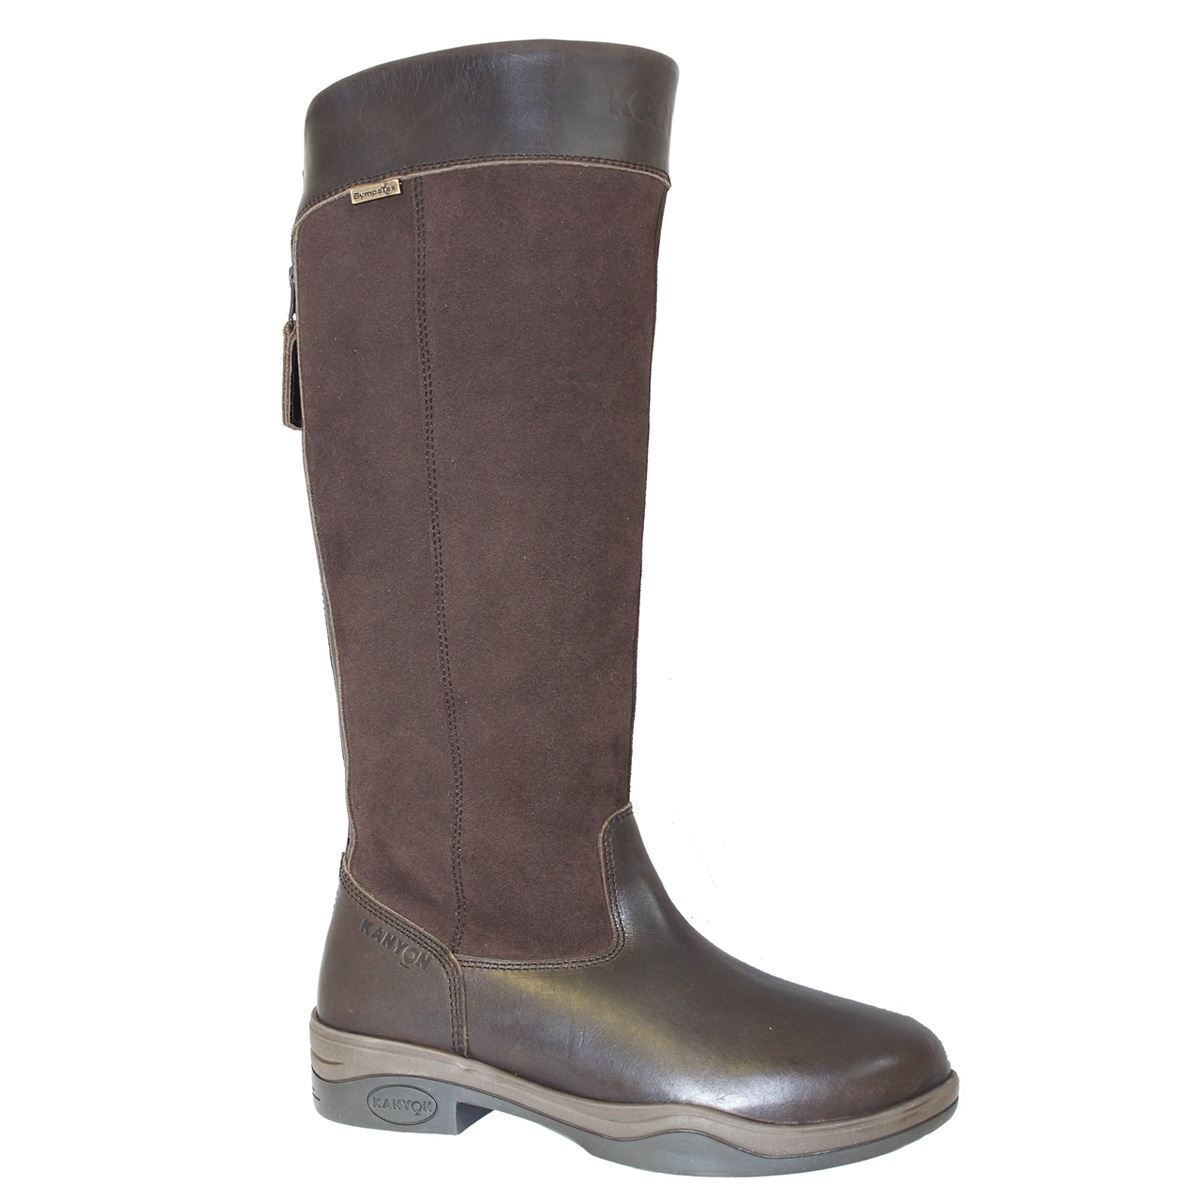 Kanyon Clydesdale confortevole in in in Pelle Impermeabili Donna Stivali Cavallerizza Equina 6d2f79